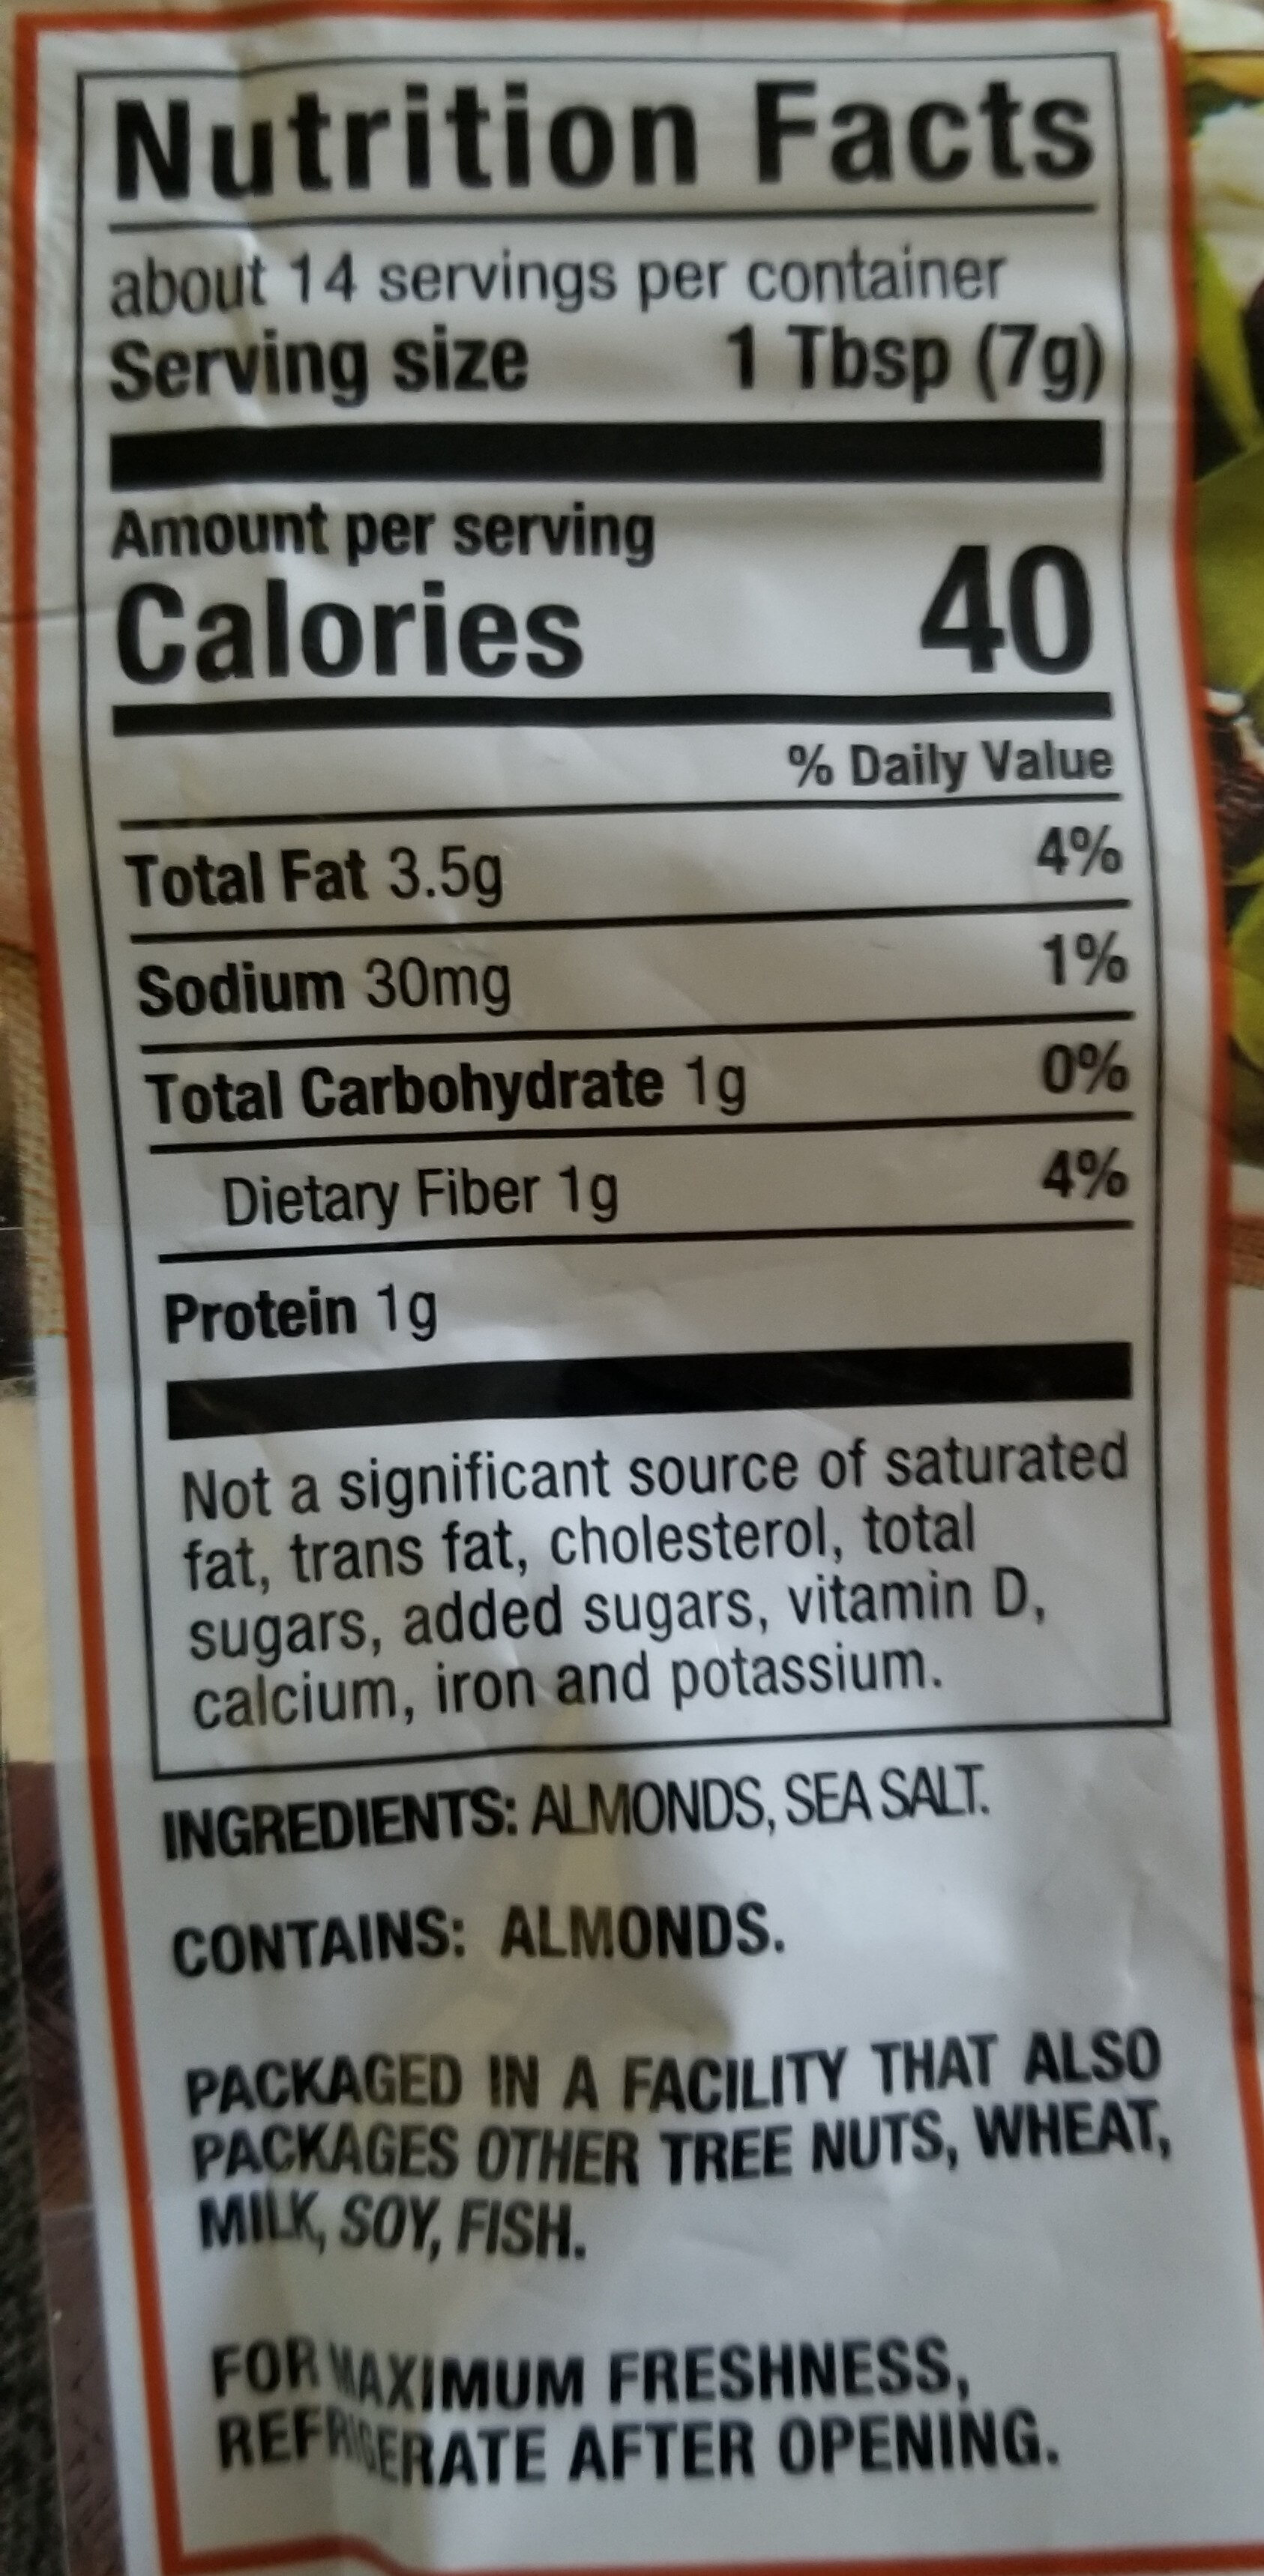 Oven Roasted Sliced Almonds - Nutrition facts